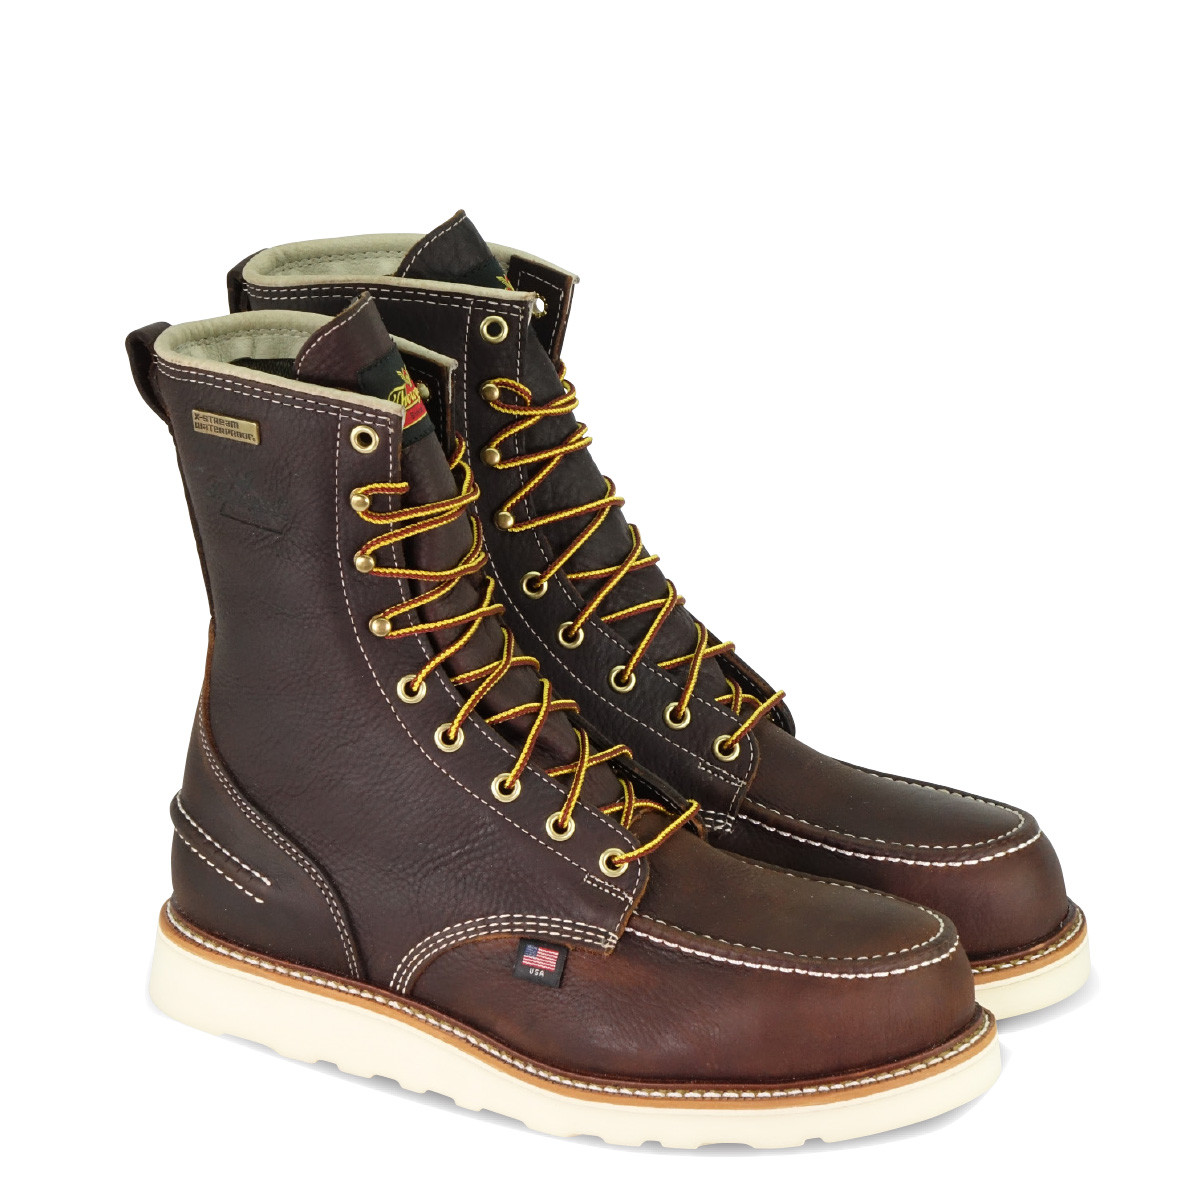 4e91a8e2908 MEN'S THOROGOOD 1957 SERIES 8″ BRIAR PITSTOP STEEL SAFETY MOC TOE ...